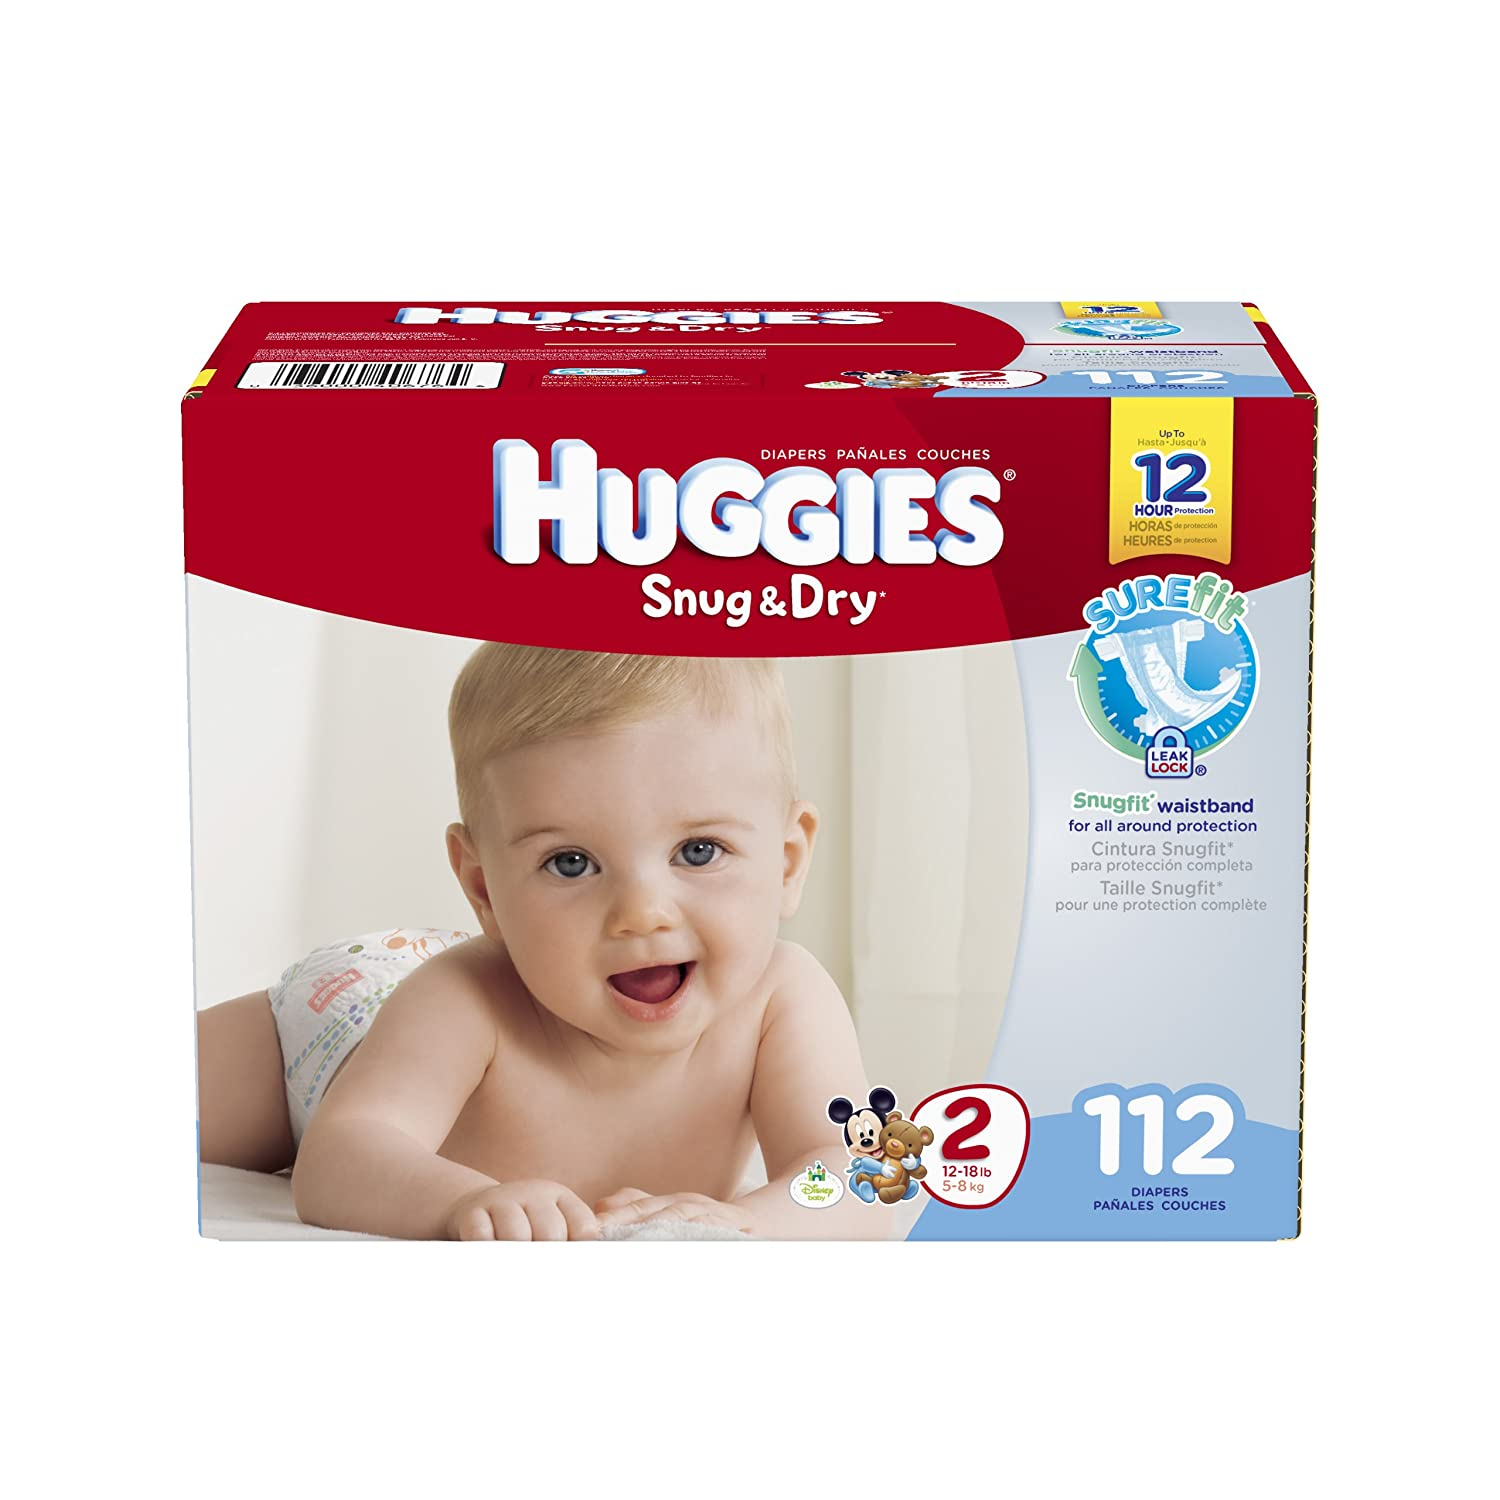 Amazon.com: Huggies Snug and Dry Diapers, Size 2, 112 Count: Health & Personal Care